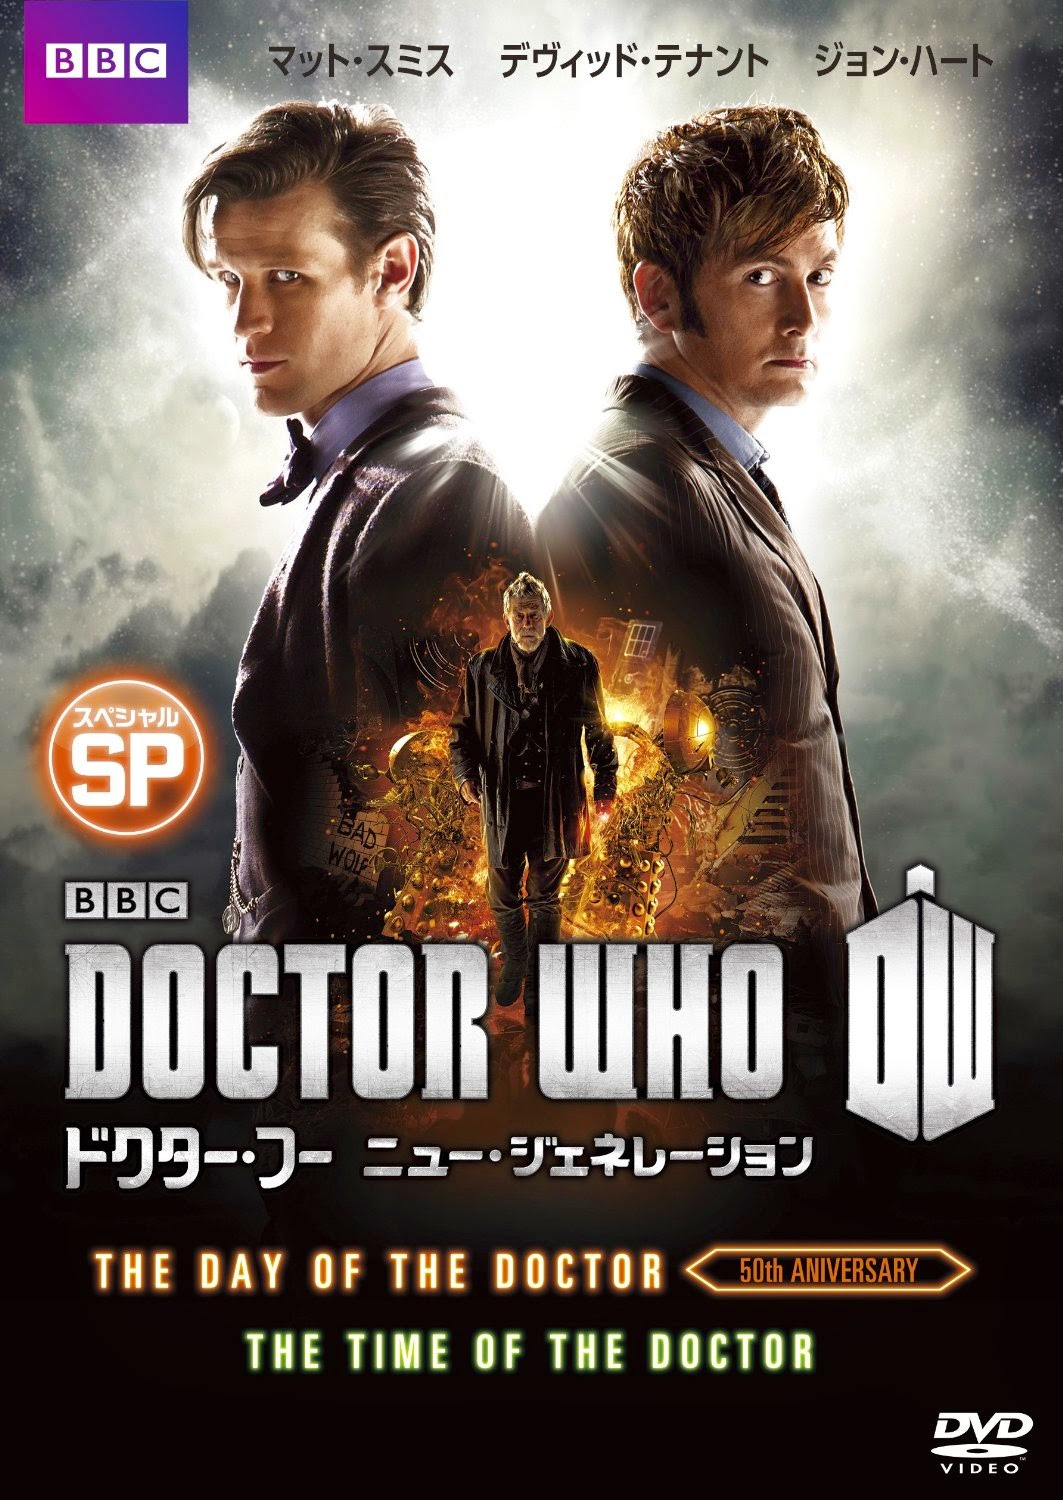 JAPAN RELEASE The Day Of The Doctor Released On DVD In